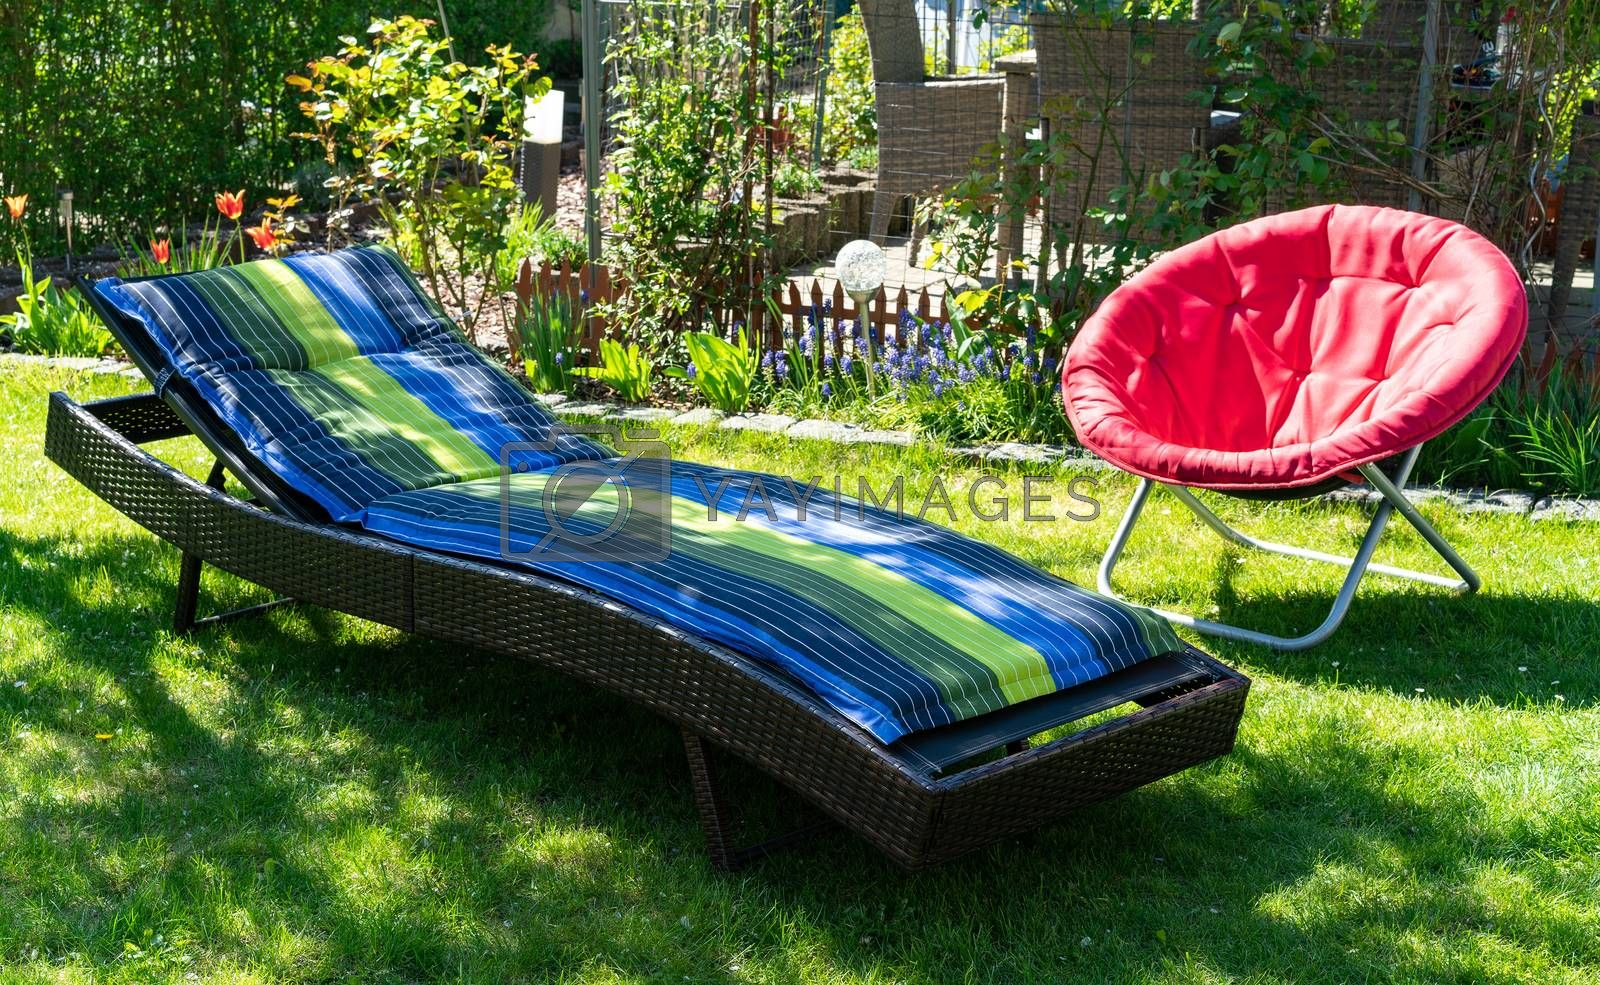 A blue and green sun lounger and a red folding moon chair in a garden in the sun. by Daniel Albach